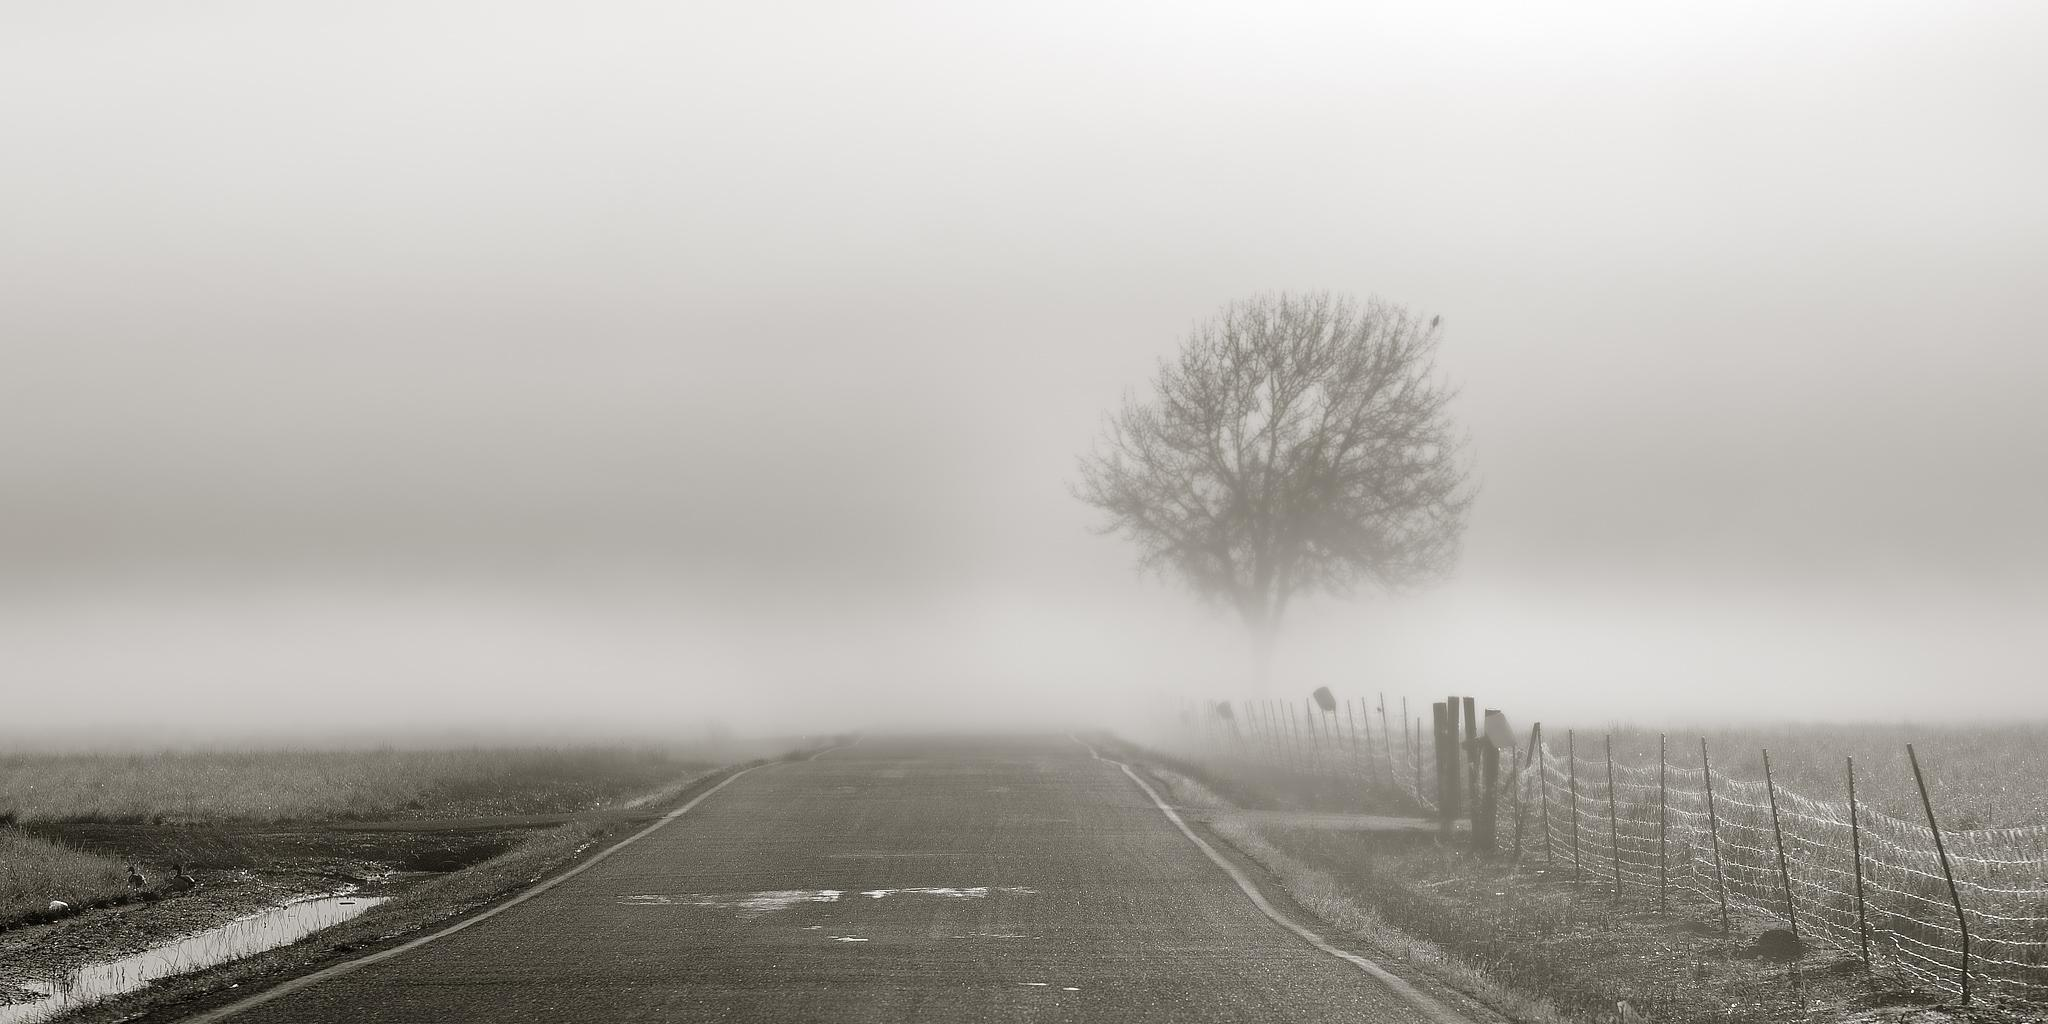 Morning fog bank in the country. by Craig Strobeck